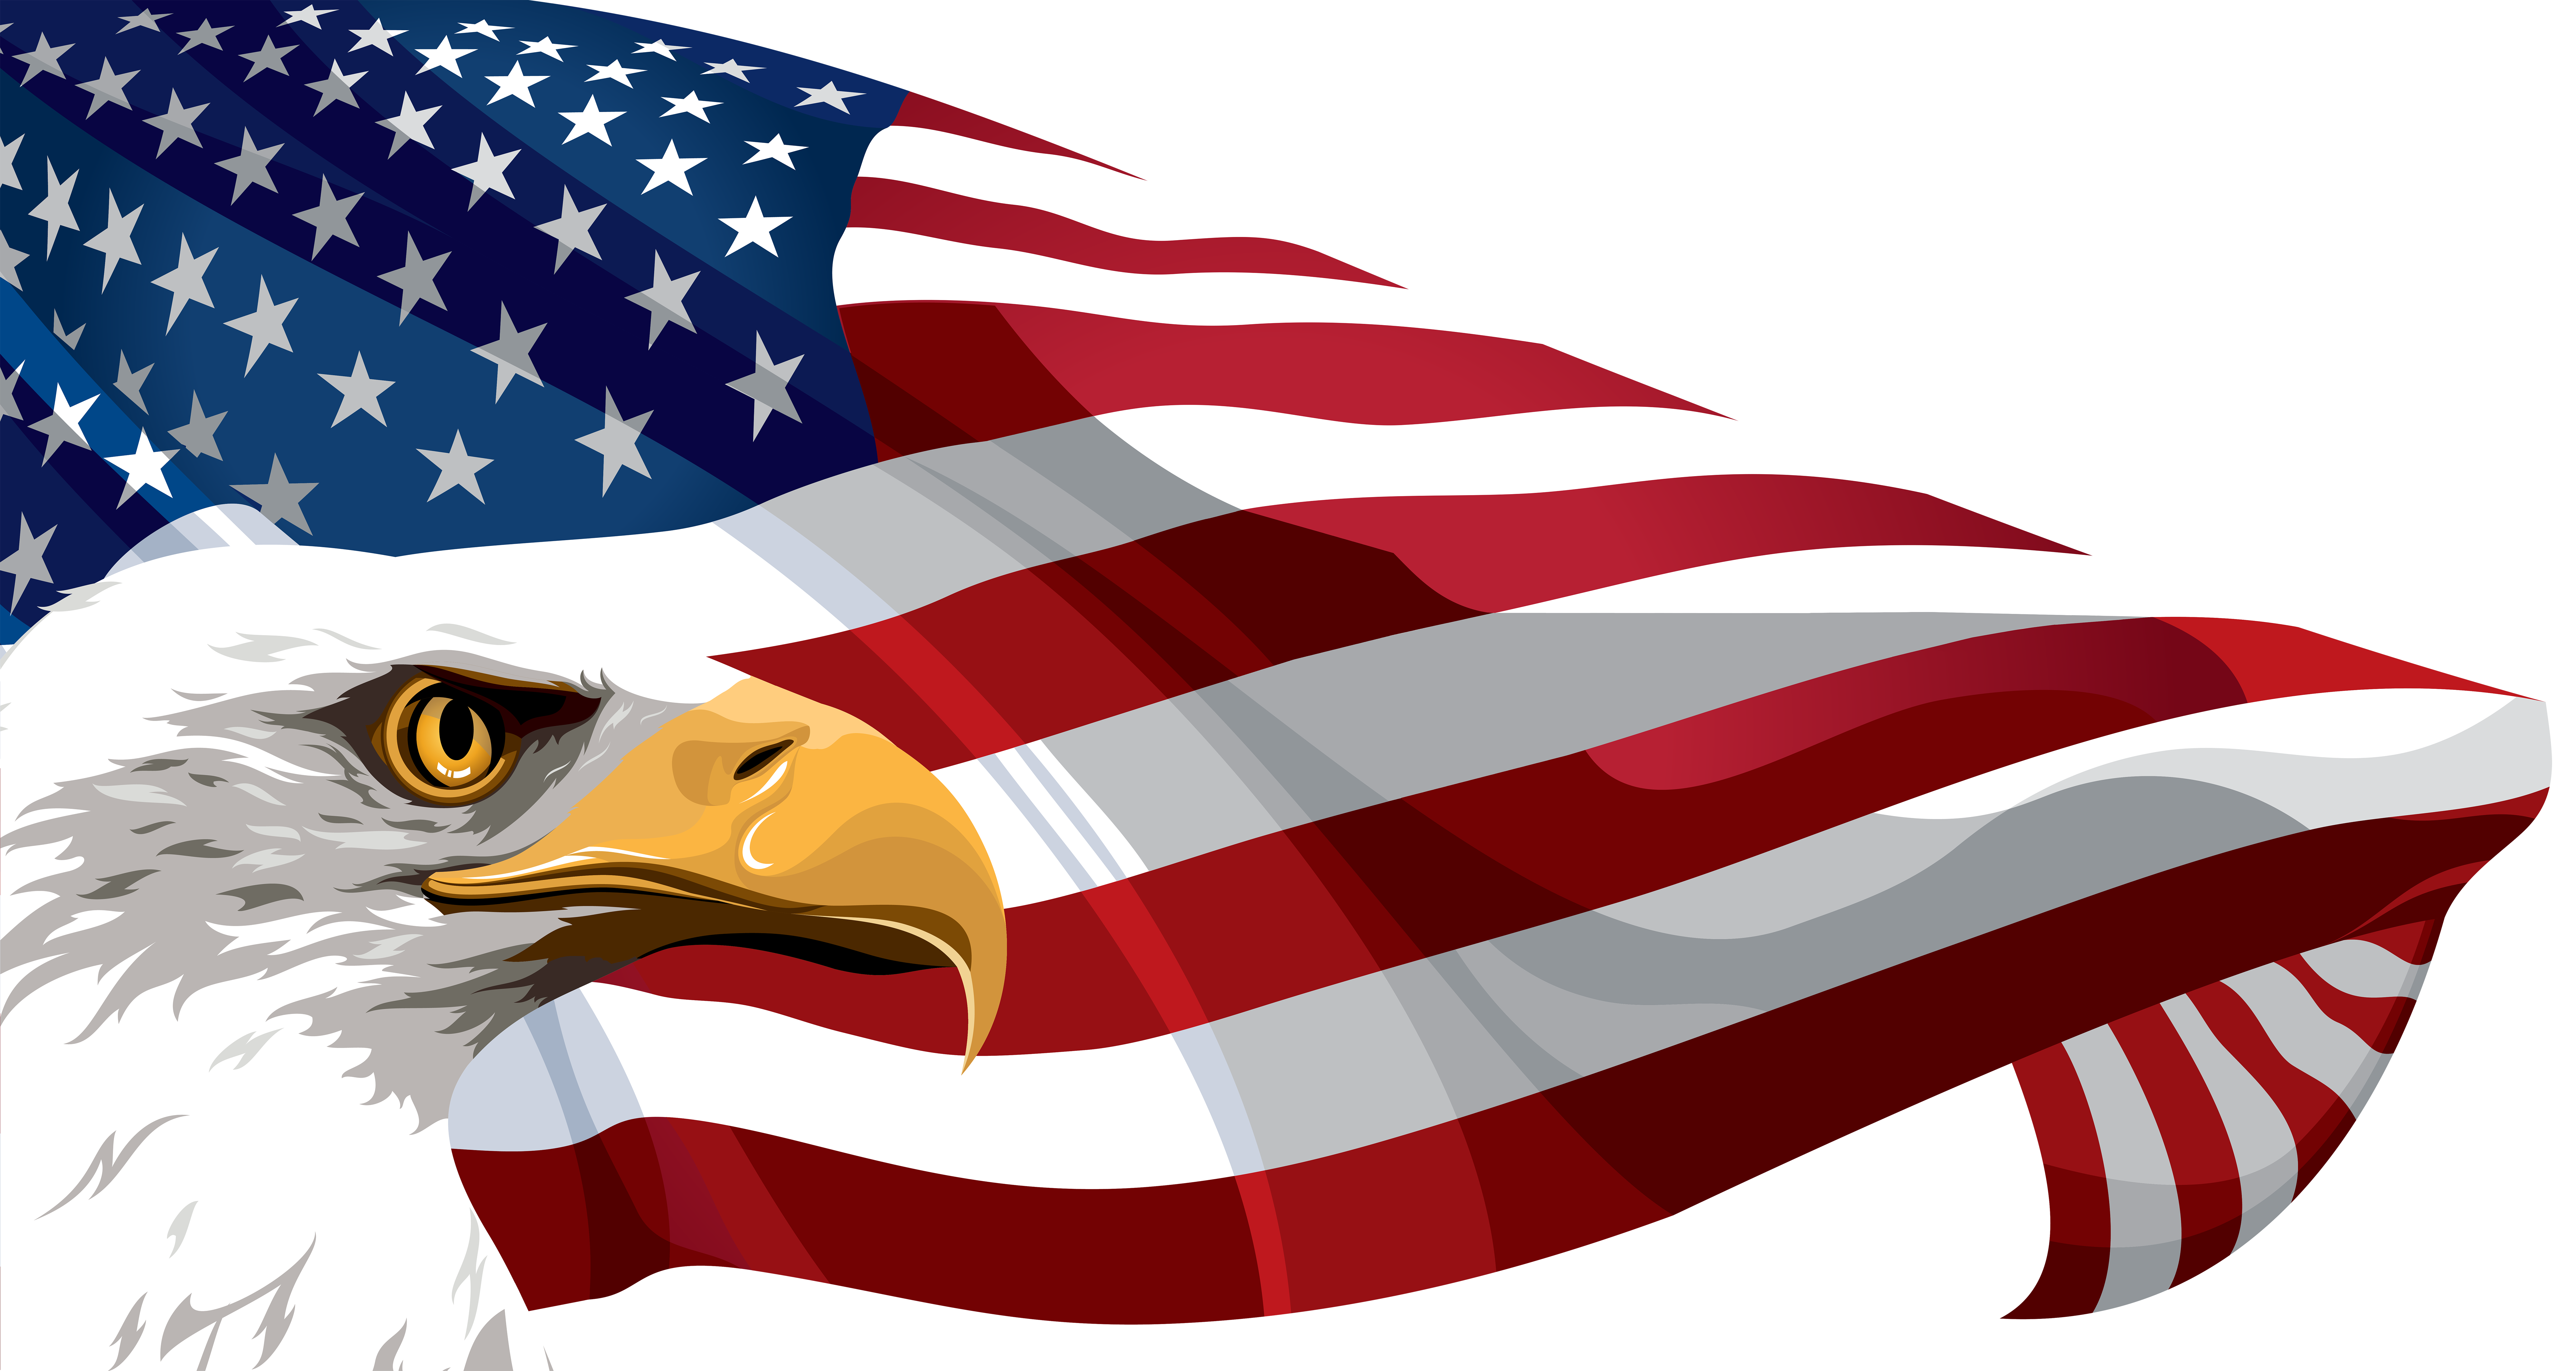 American Flag And Eagle Transparent Png Clip Art Image Gallery Yopriceville High Quality Images American Flag Clip Art American Flag Wallpaper Art Images